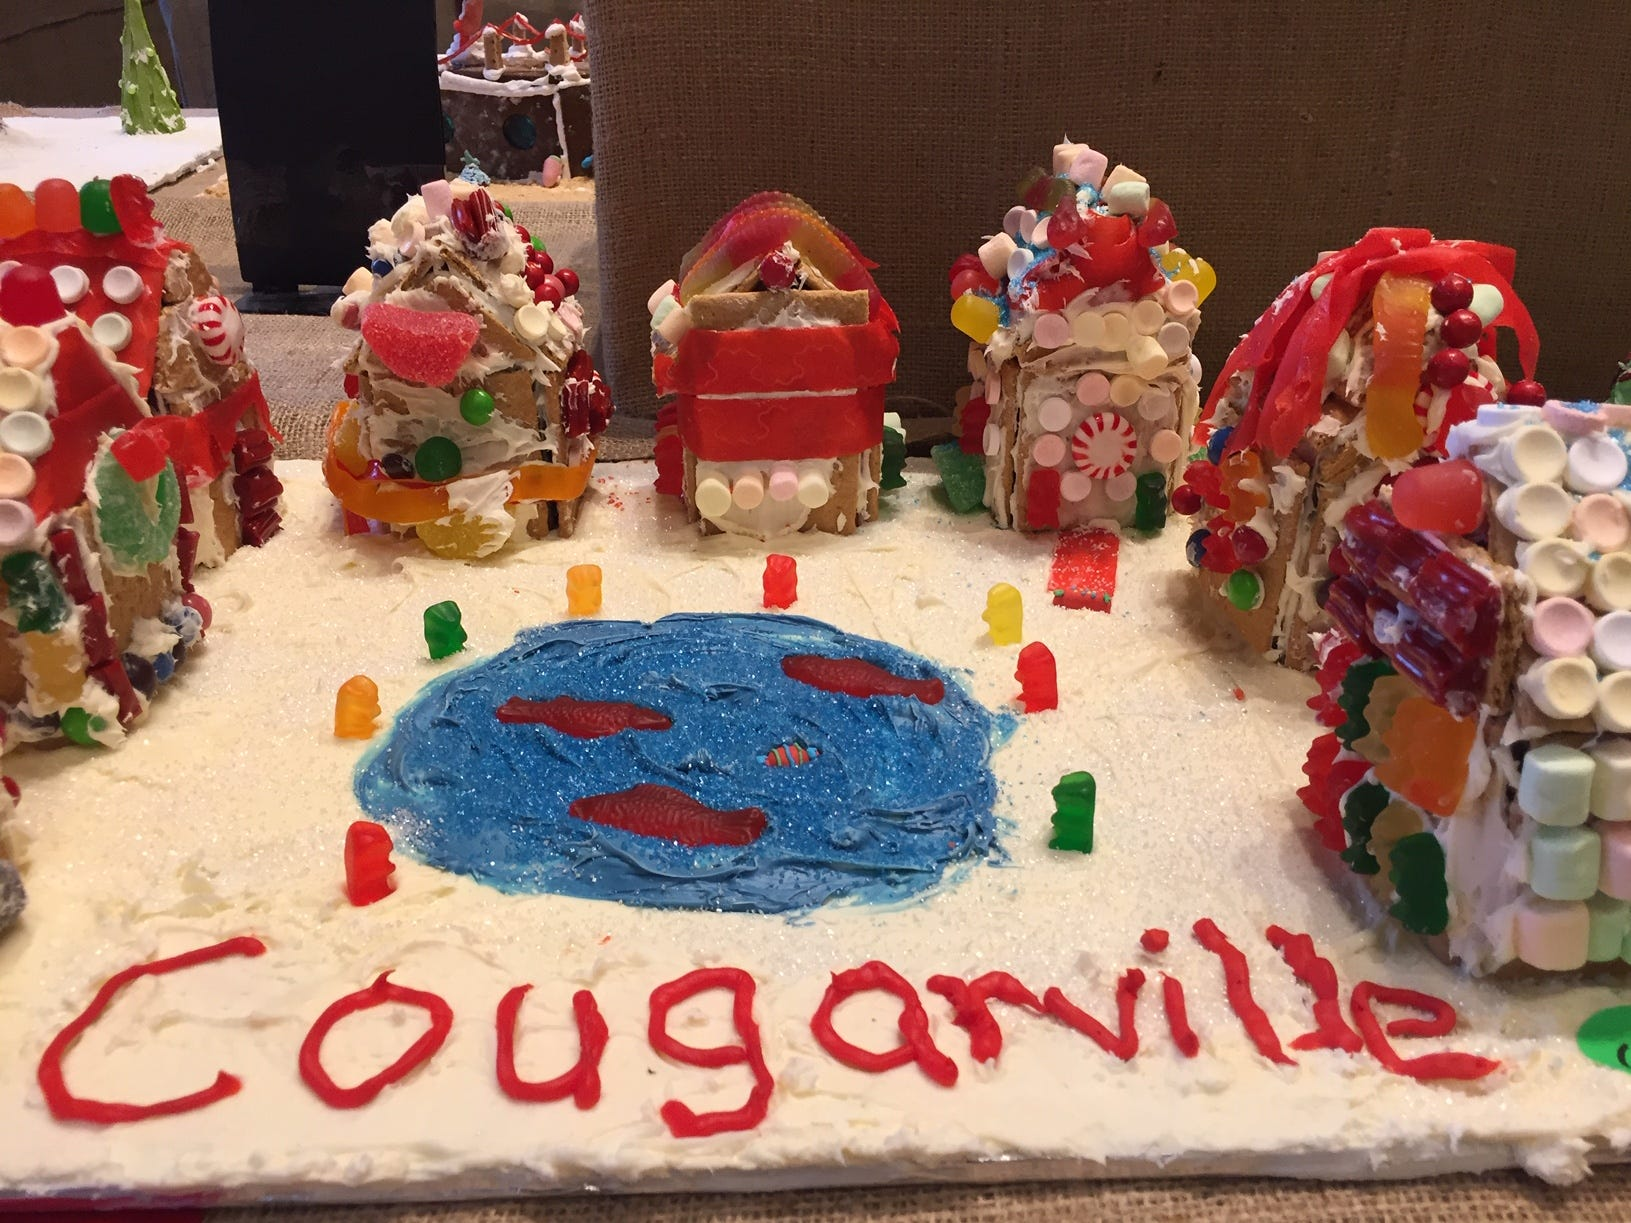 """Cougarville"" by Central Middle School, Parsippany, grades 6-8, at the Gingerbread Wonderland at the Frelinghuysen Arboretum. Special Needs category."